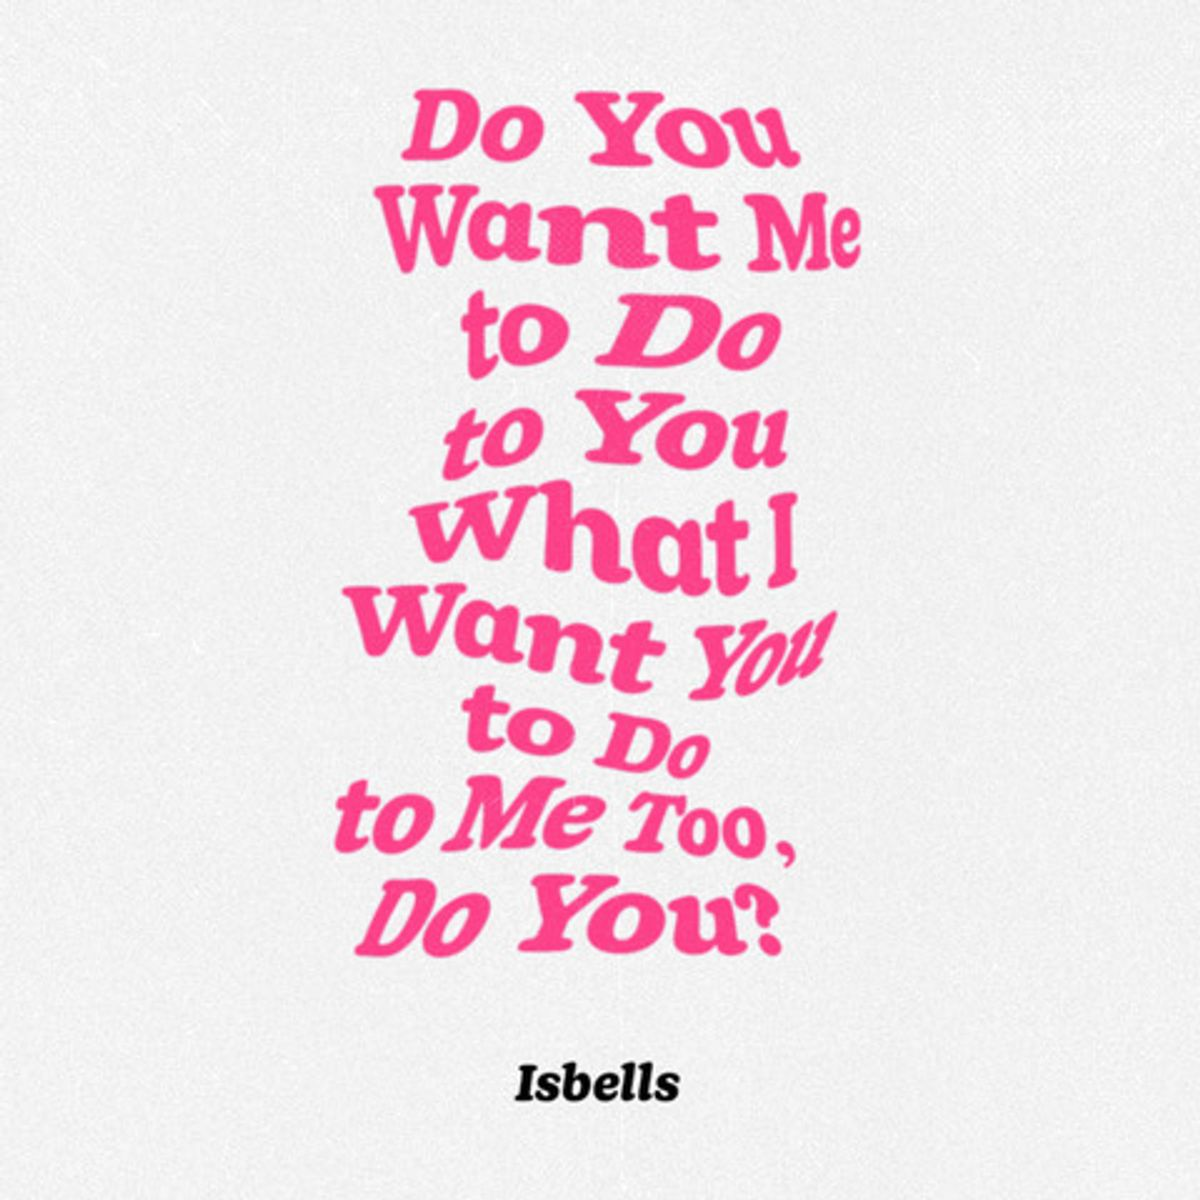 Isbells - Do You Want Me to Do to You What I Want You to Do to Me Too, Do Y